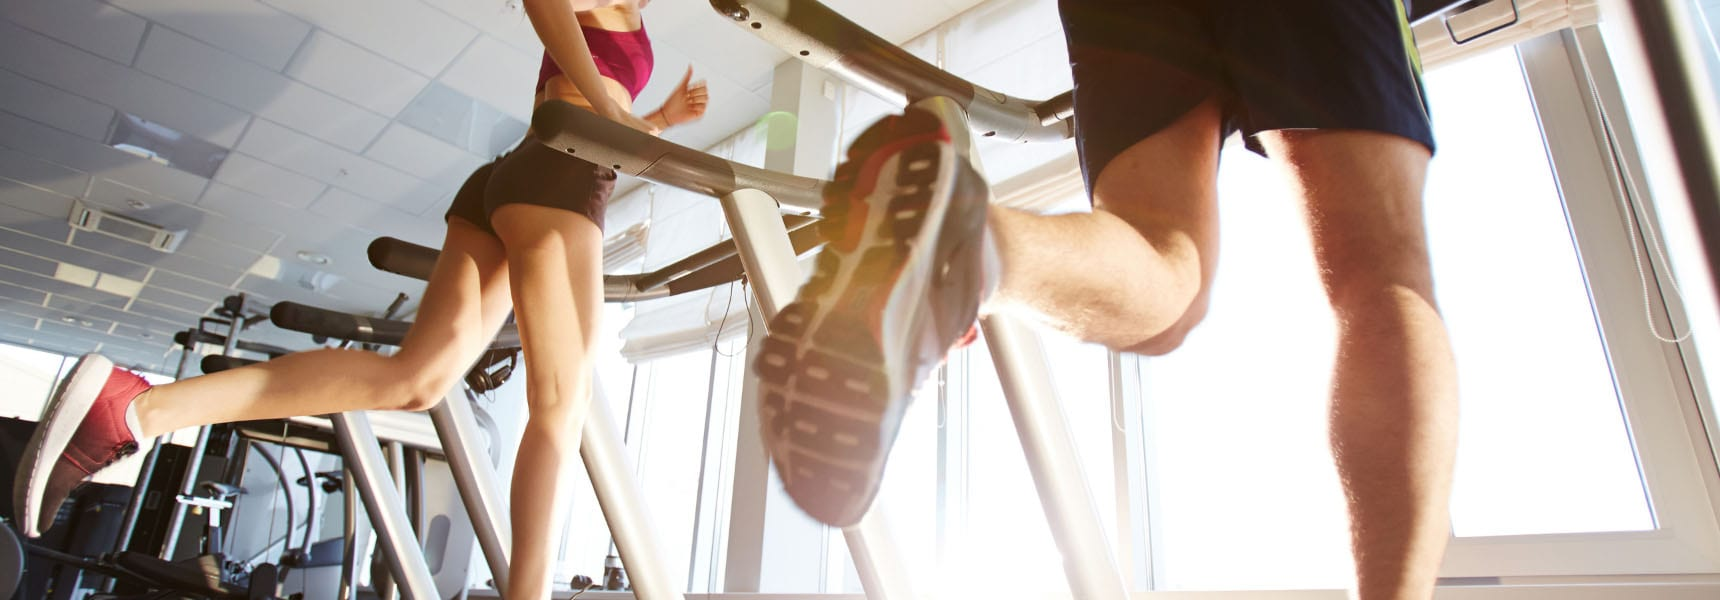 man and a woman running on treadmills